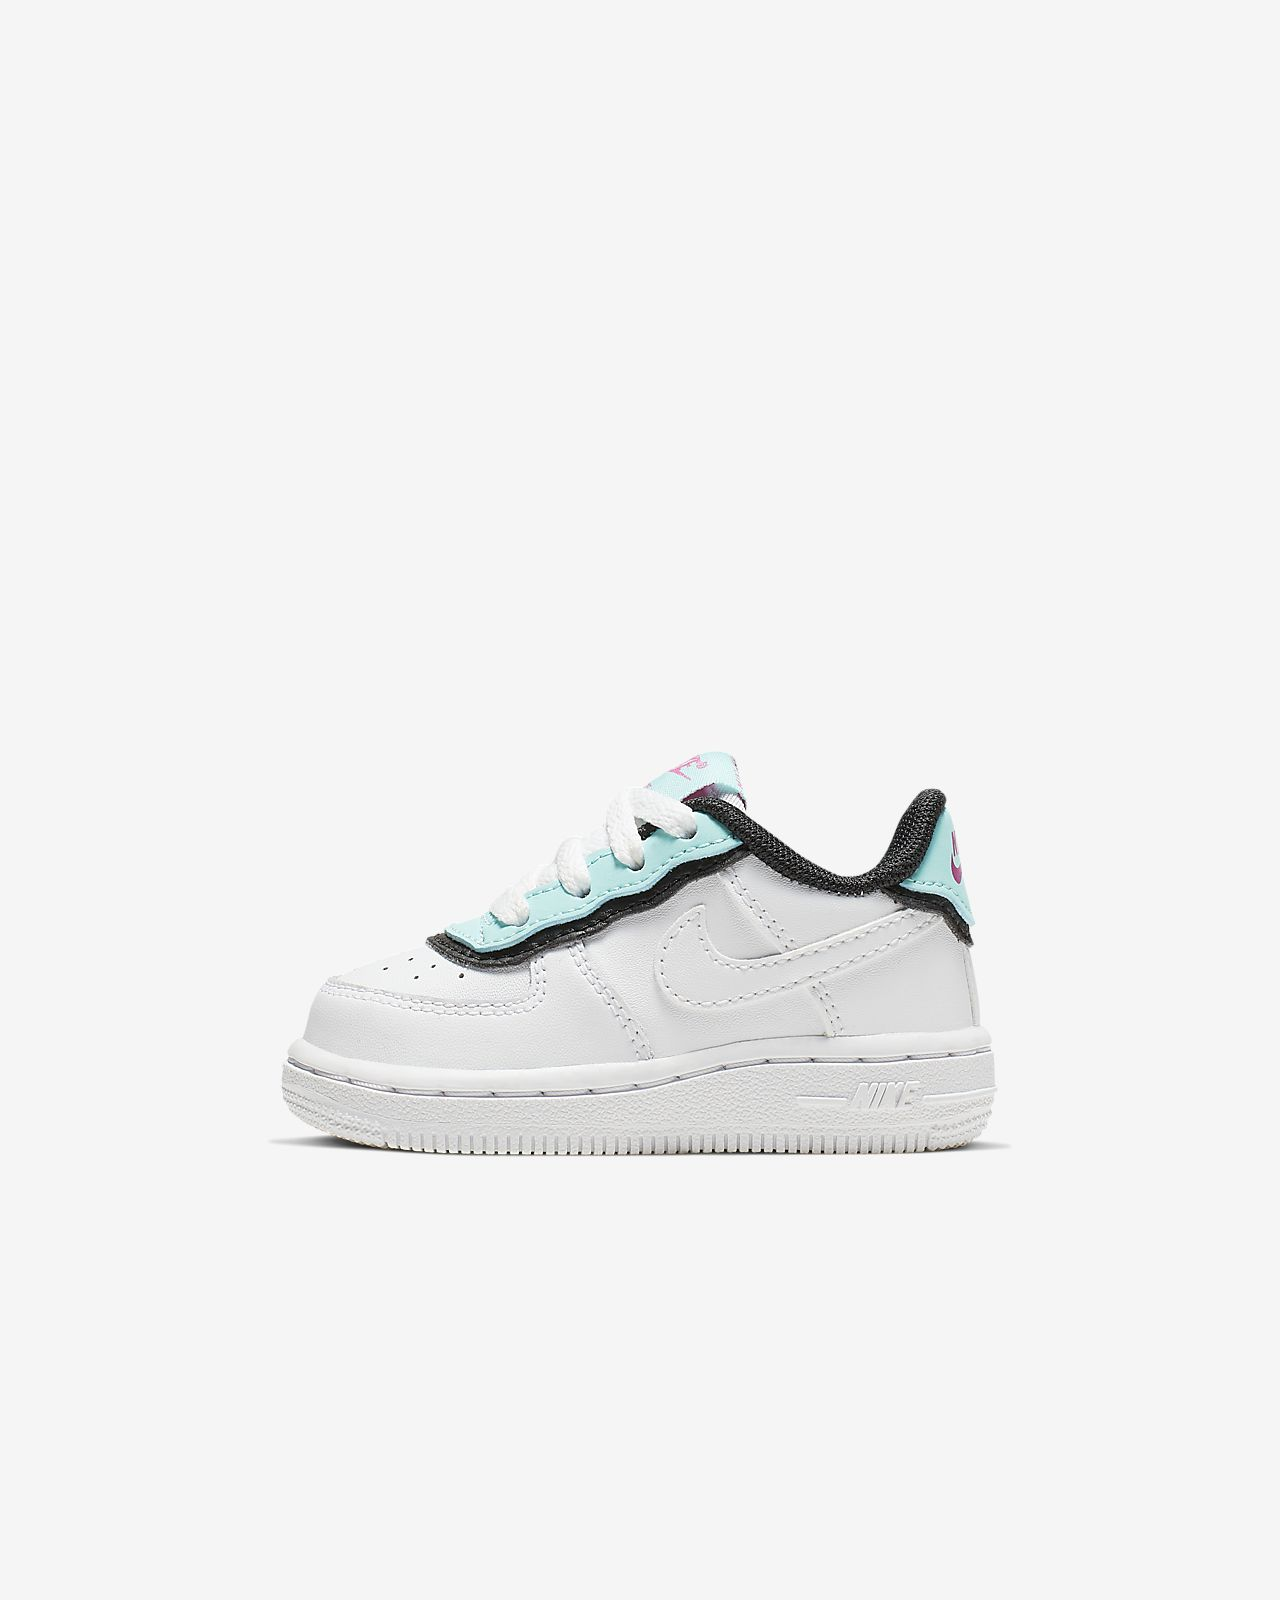 Nike Force 1 LV8 1 DBL Baby/Toddler Shoe